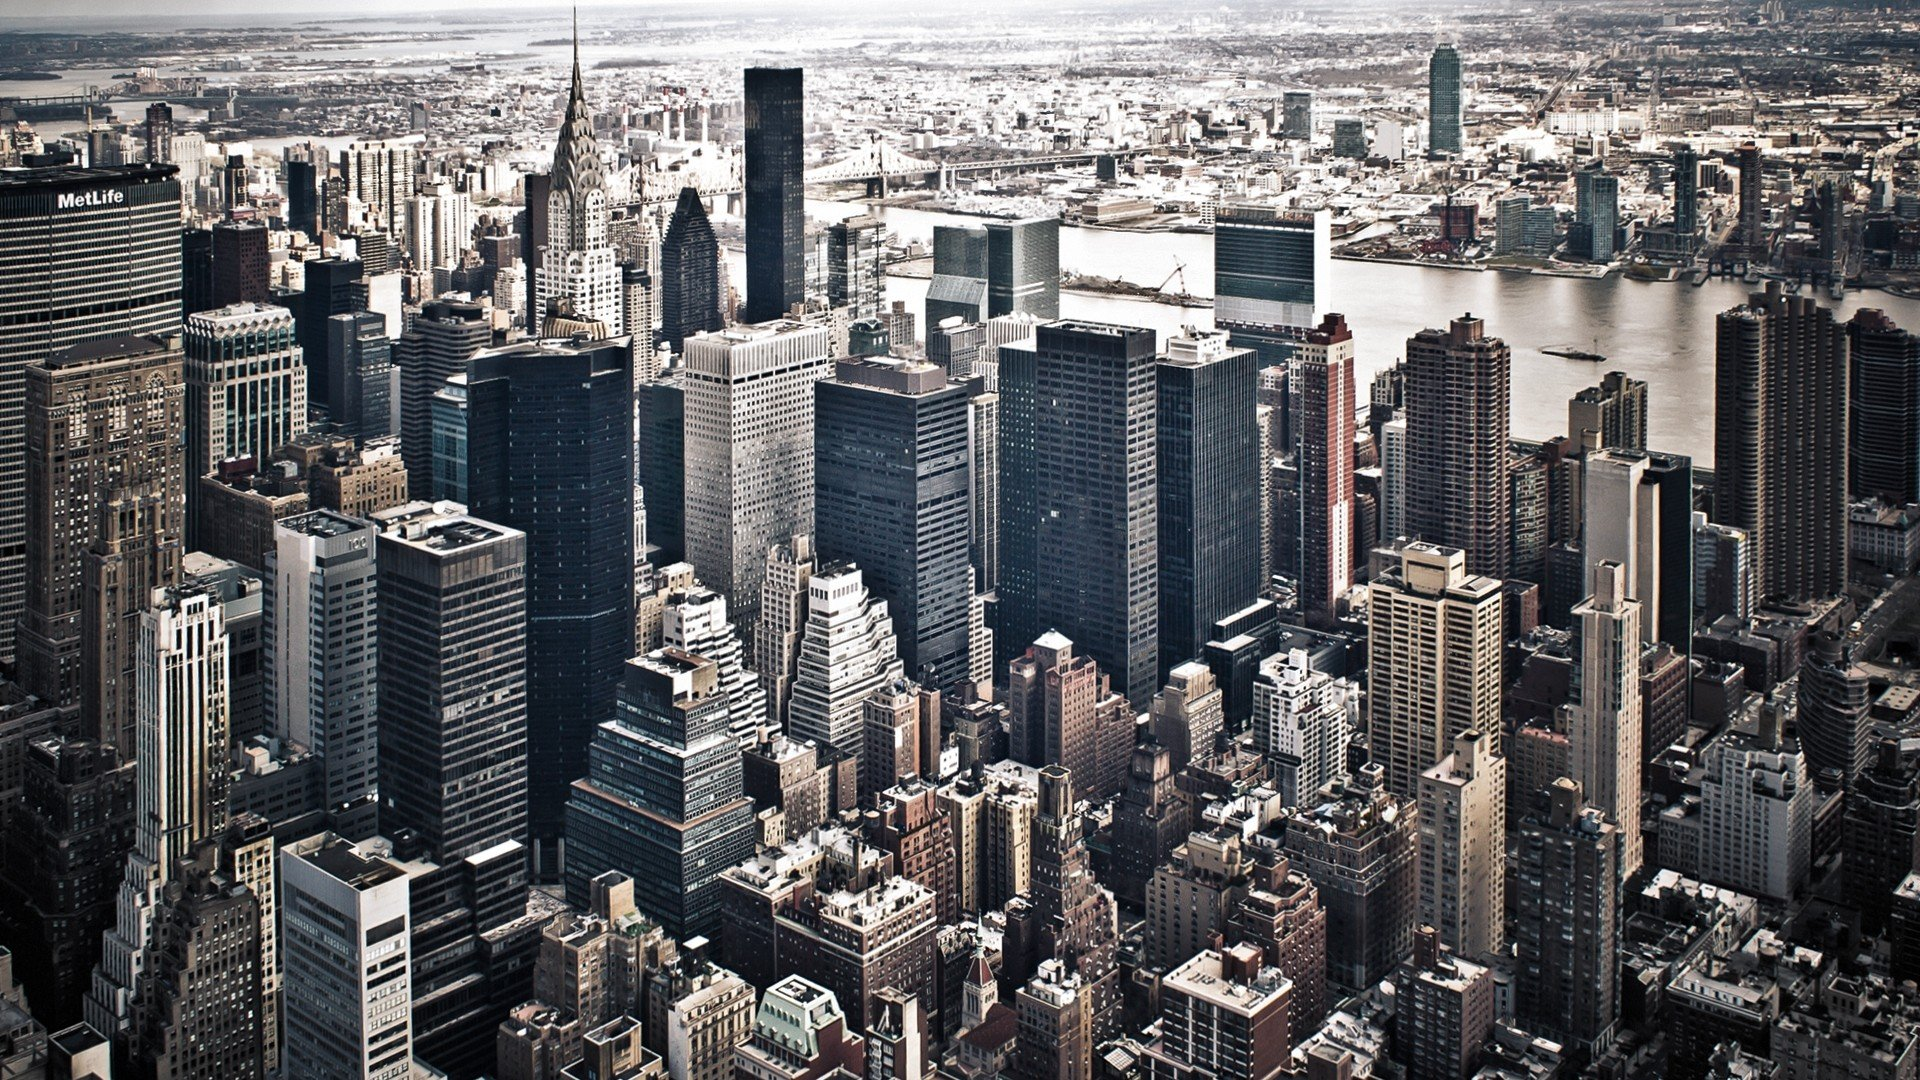 Building Photography landscapes cityscapes architecture usa new york city skyscrapers